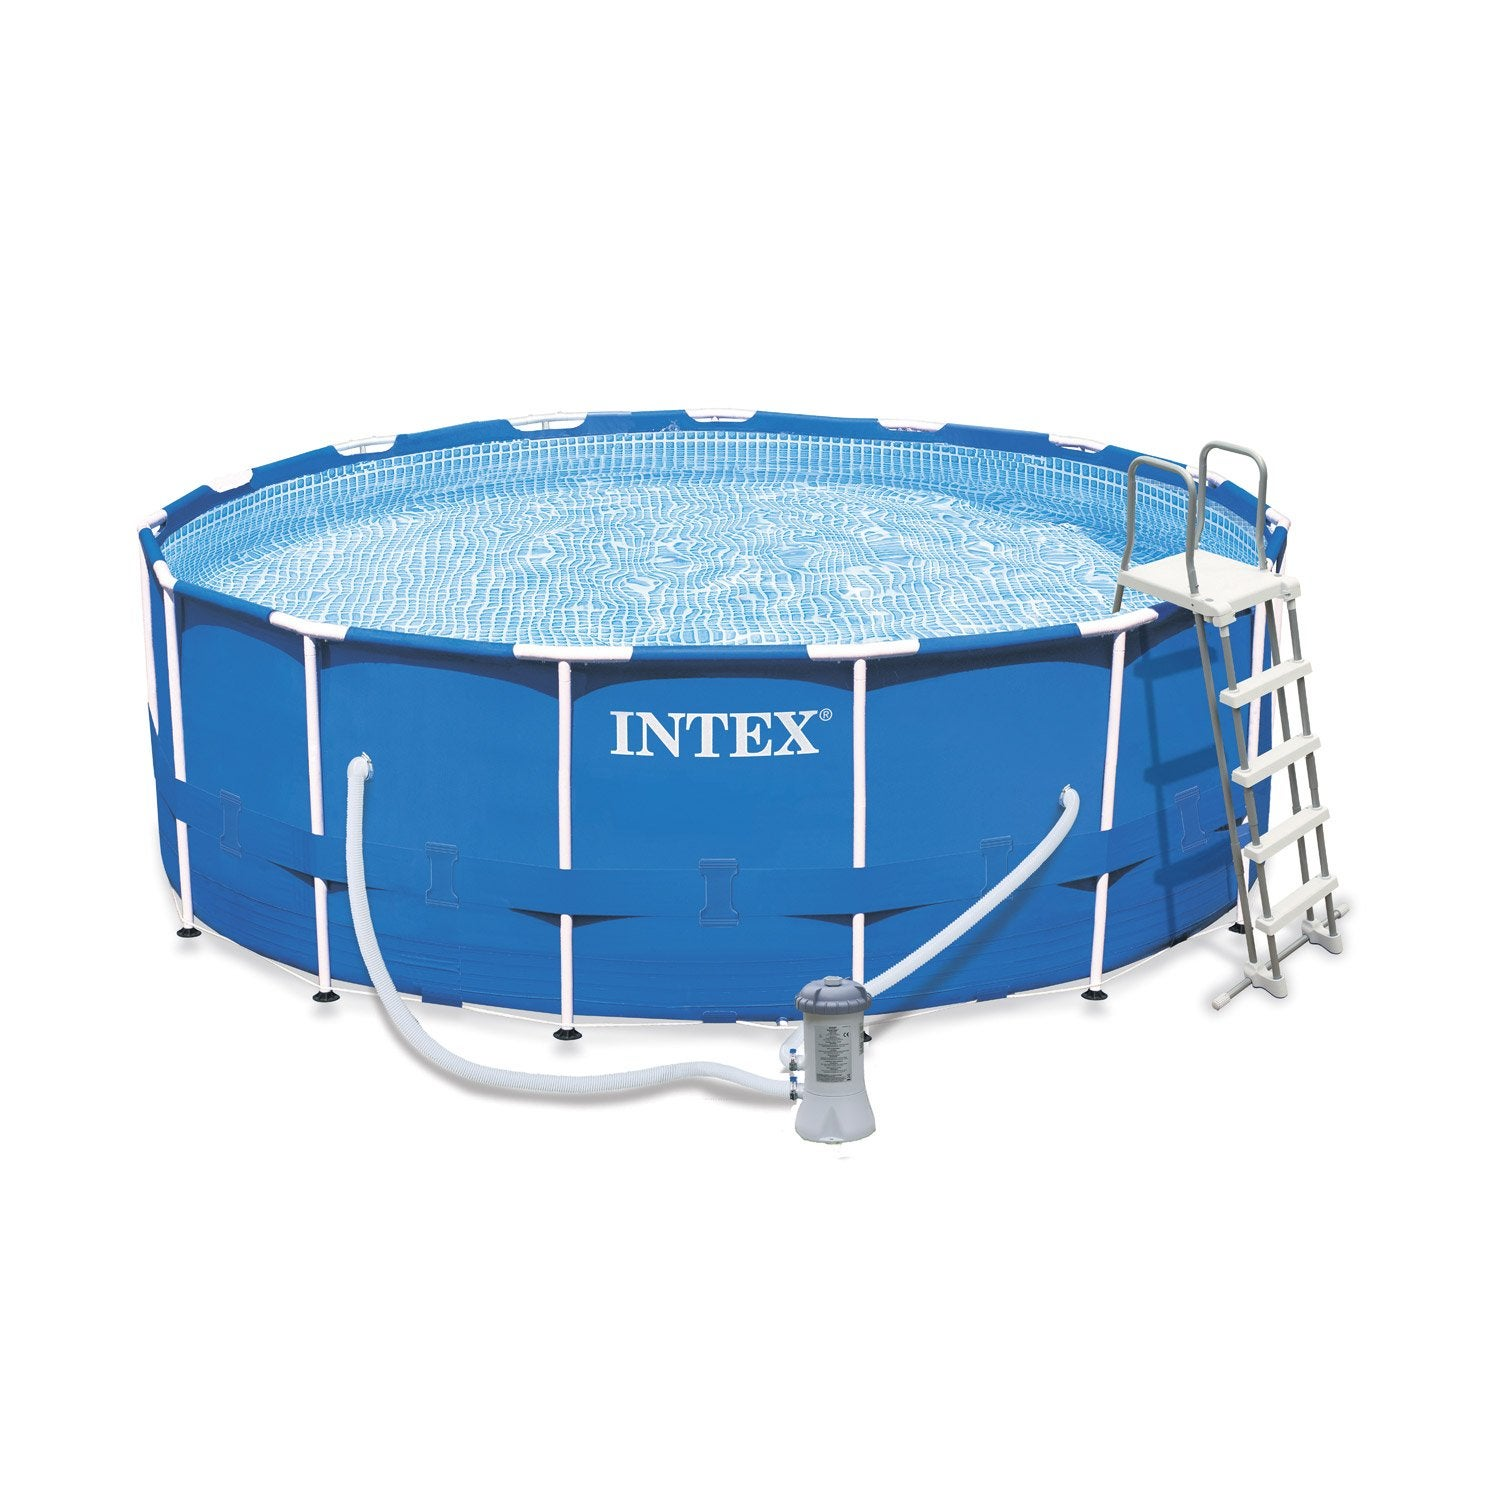 Piscine hors sol autoportante tubulaire metal frame intex - Piscine leroy merlin ...